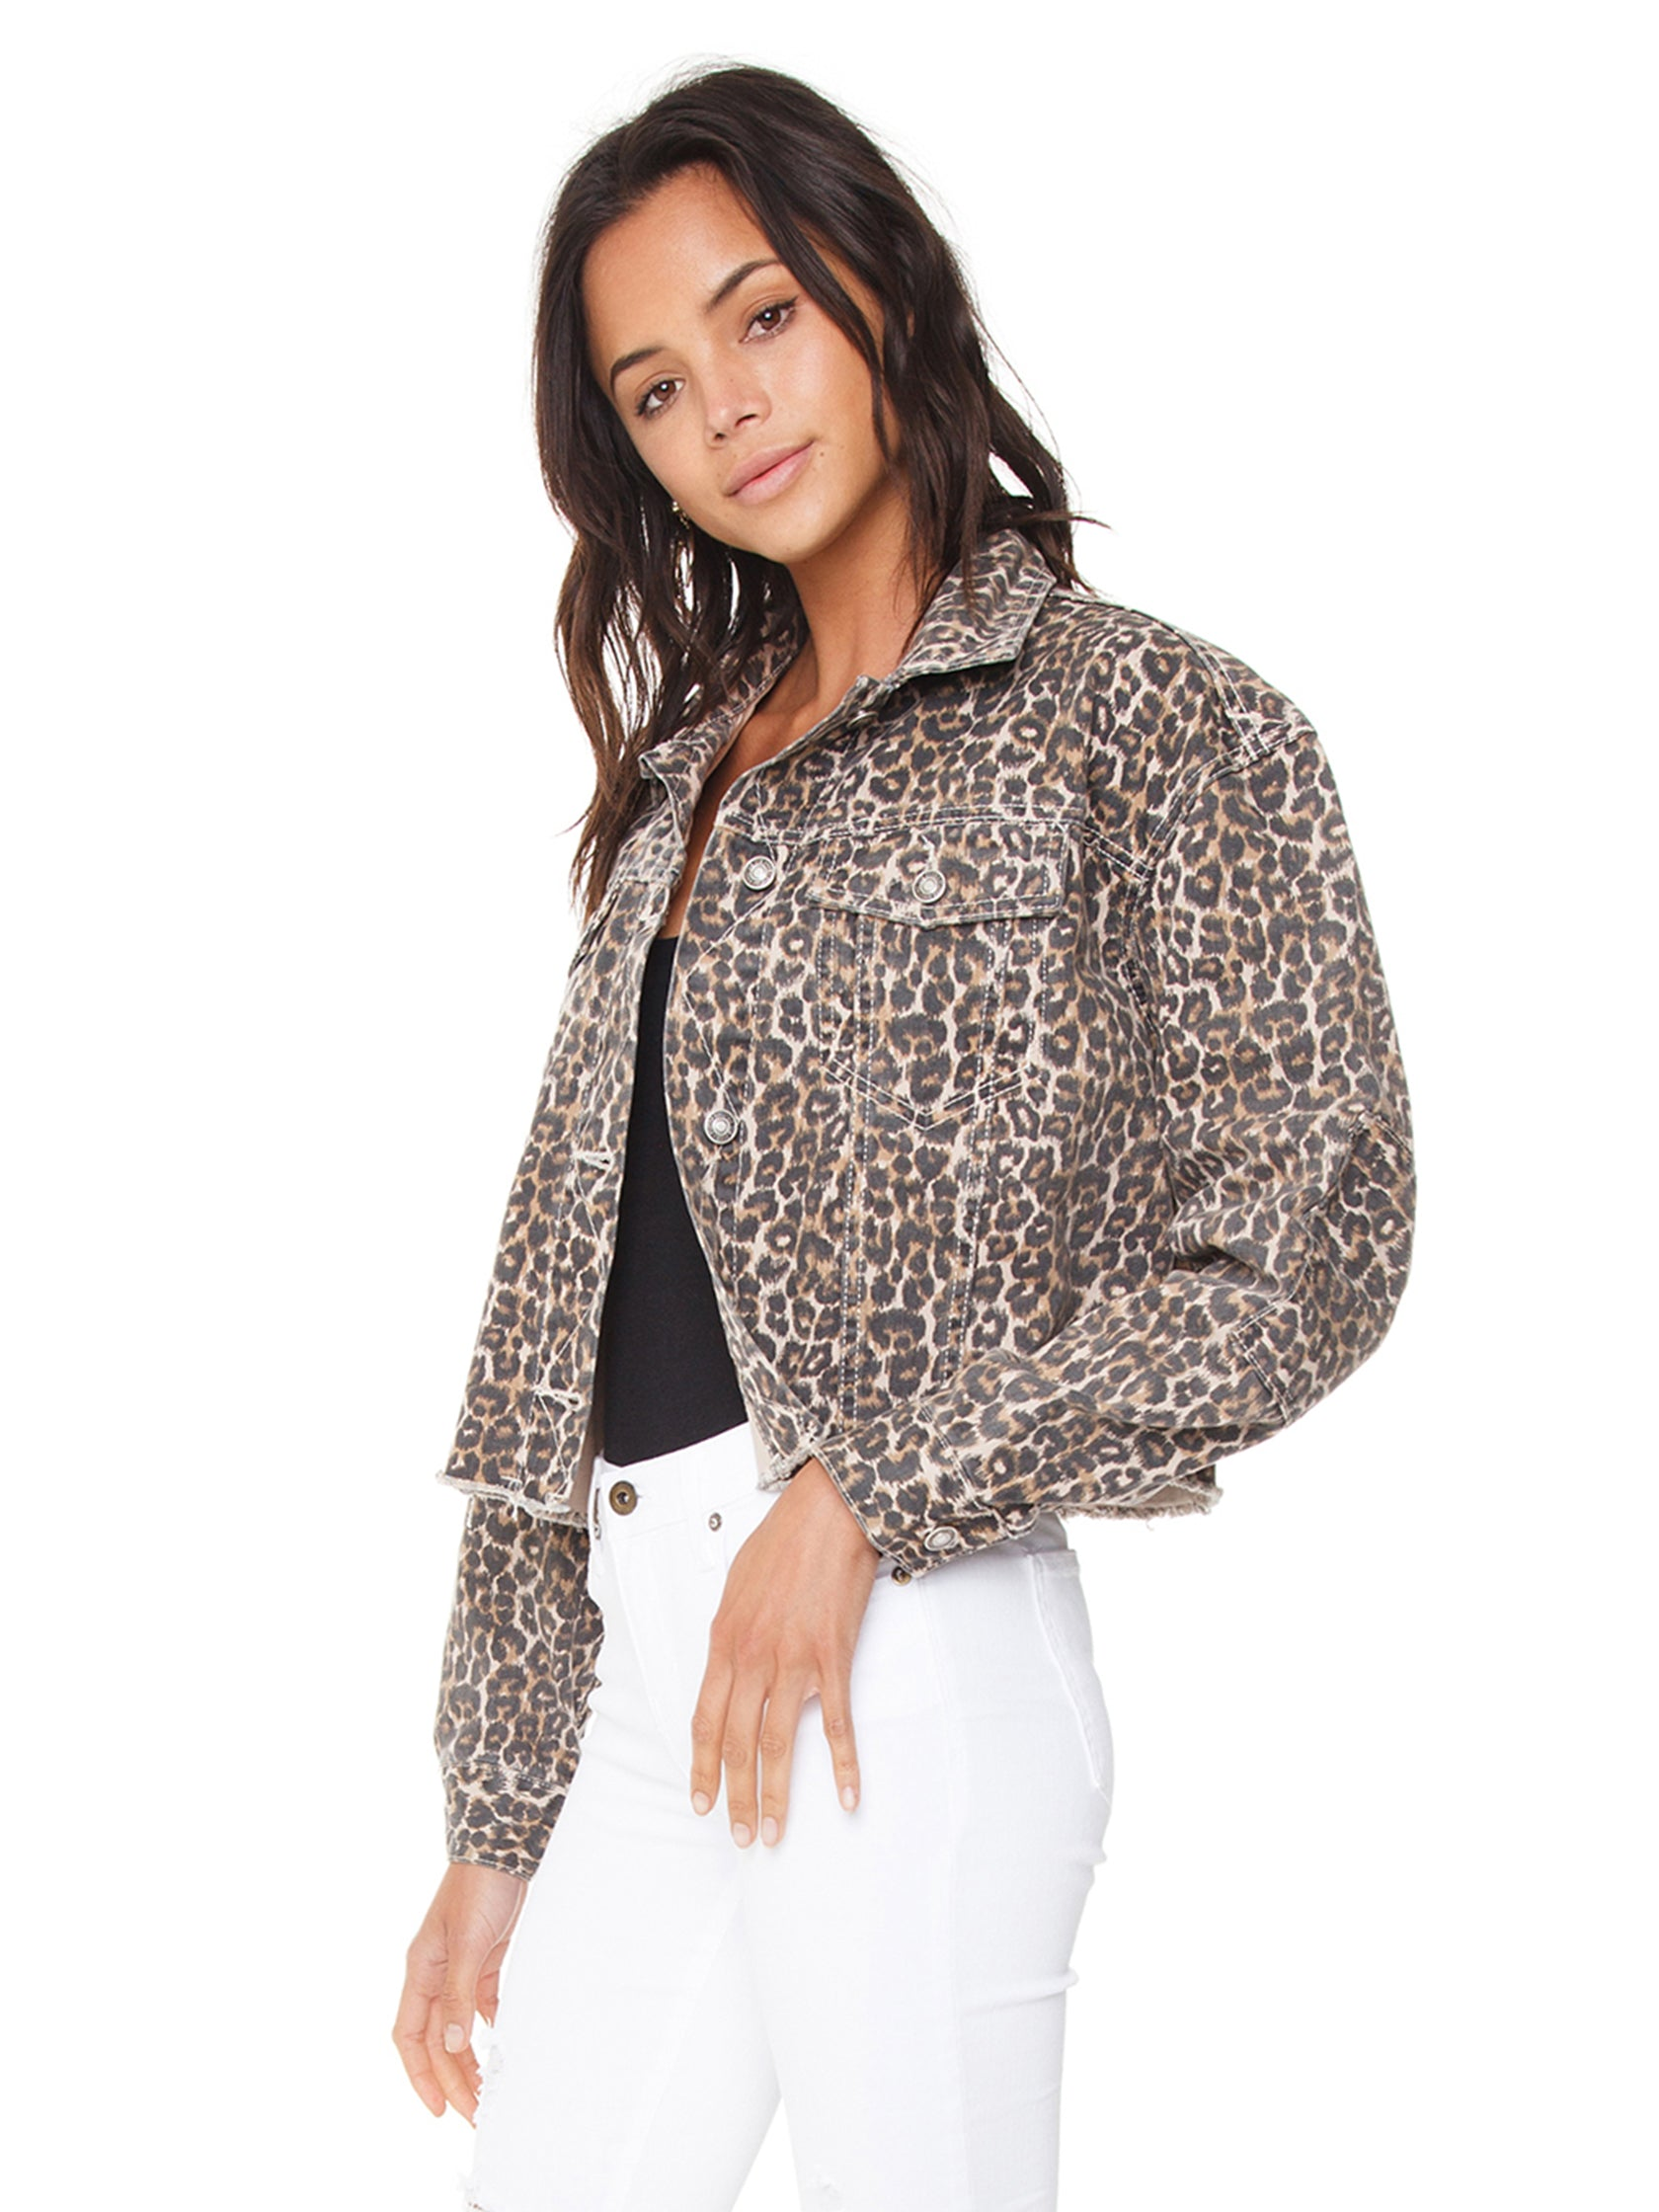 Women wearing a jacket rental from Free People called Cheetah Printed Denim Jacket